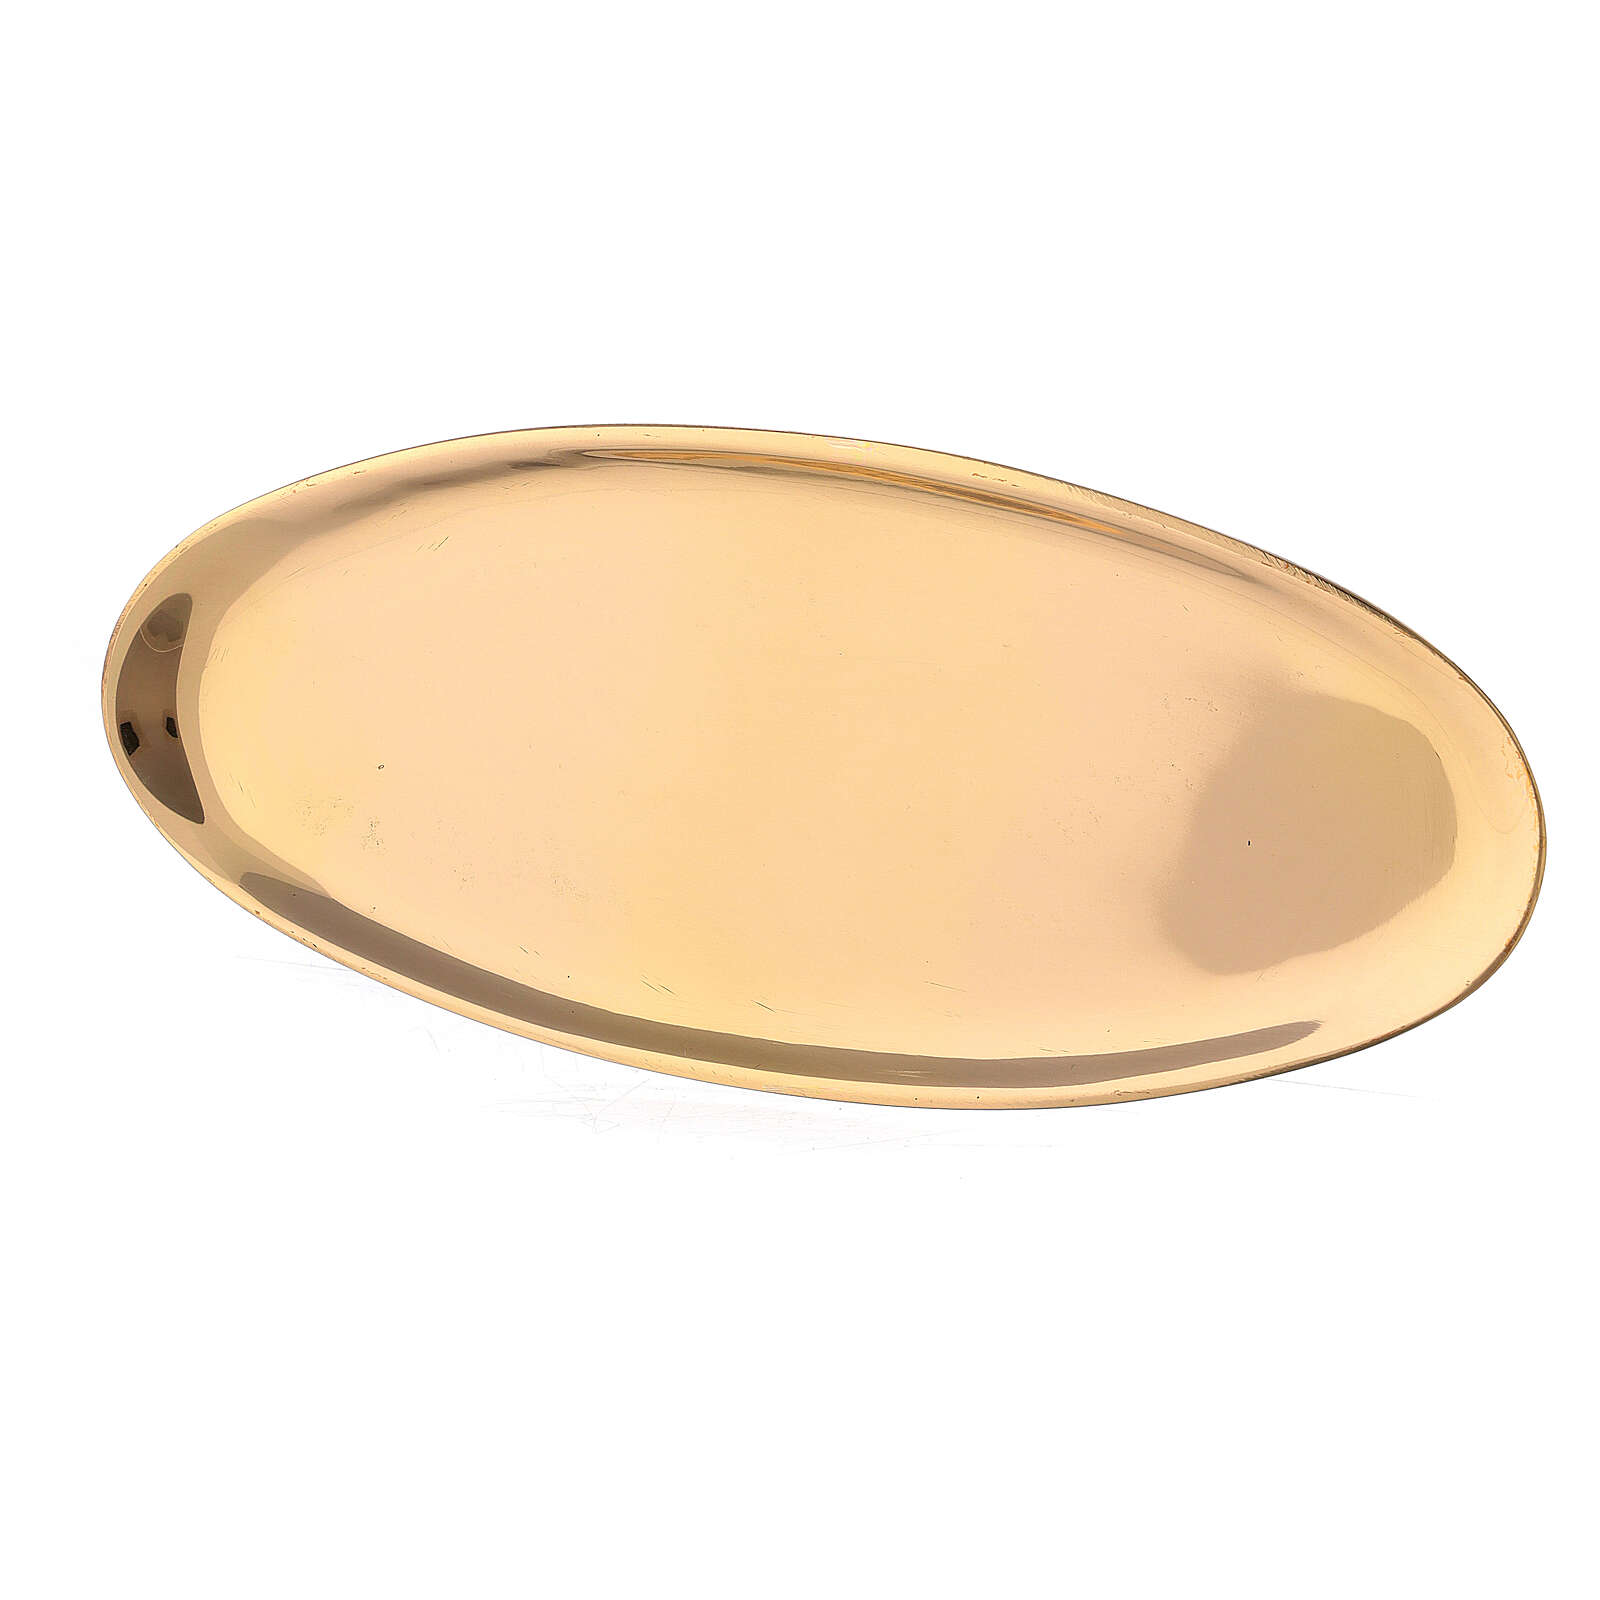 Oval candle holder plate of polished brass 6x3 in 3